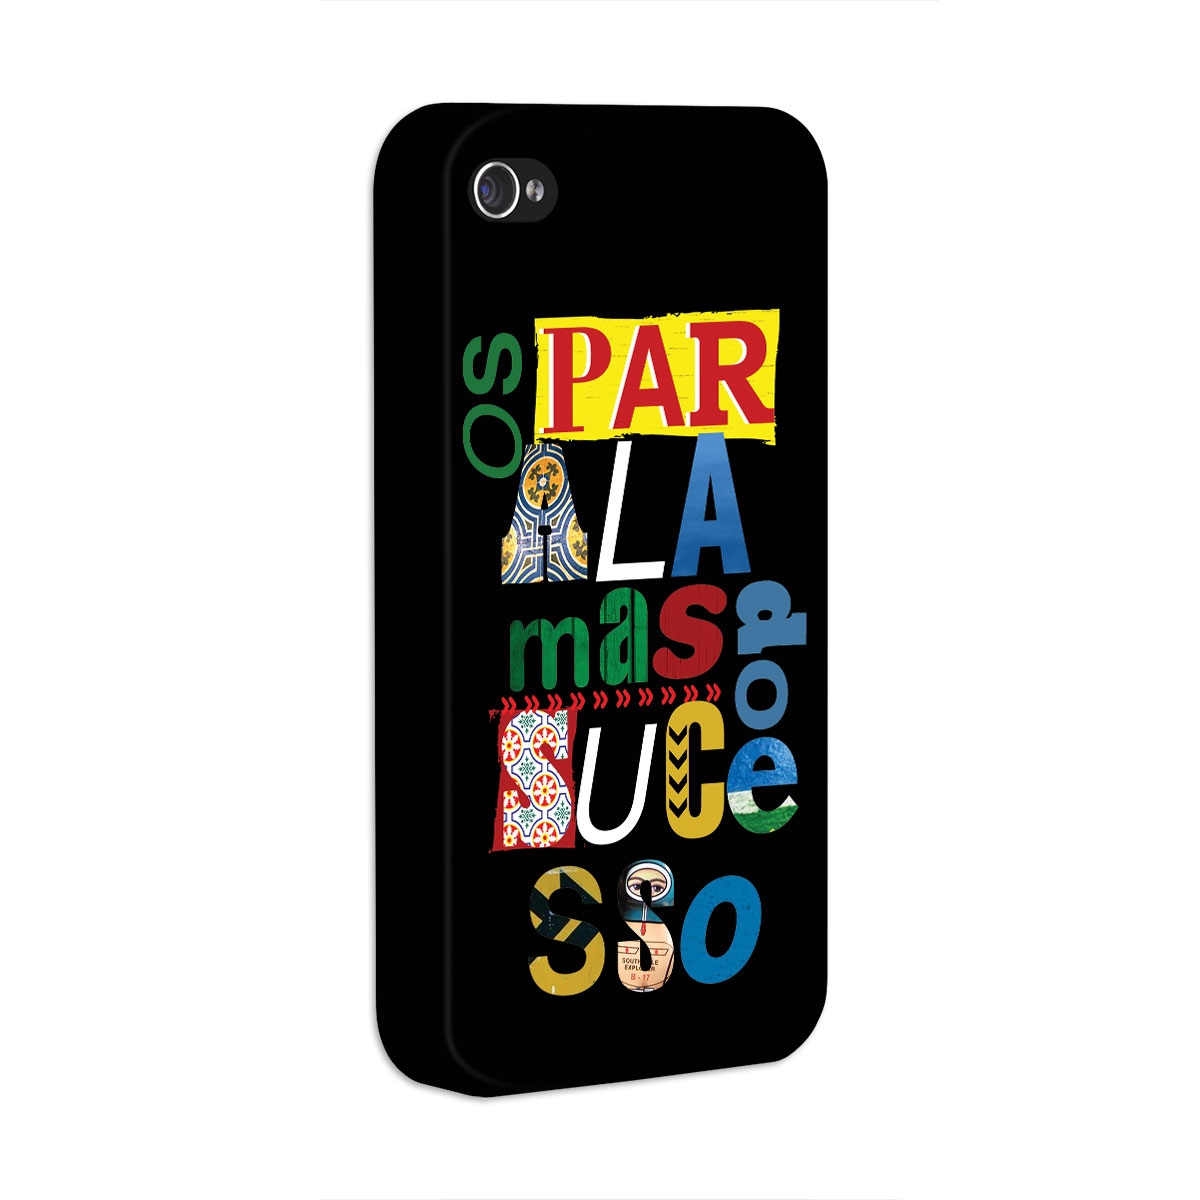 Capa de iPhone 4/4S Os Paralamas do Sucesso Type